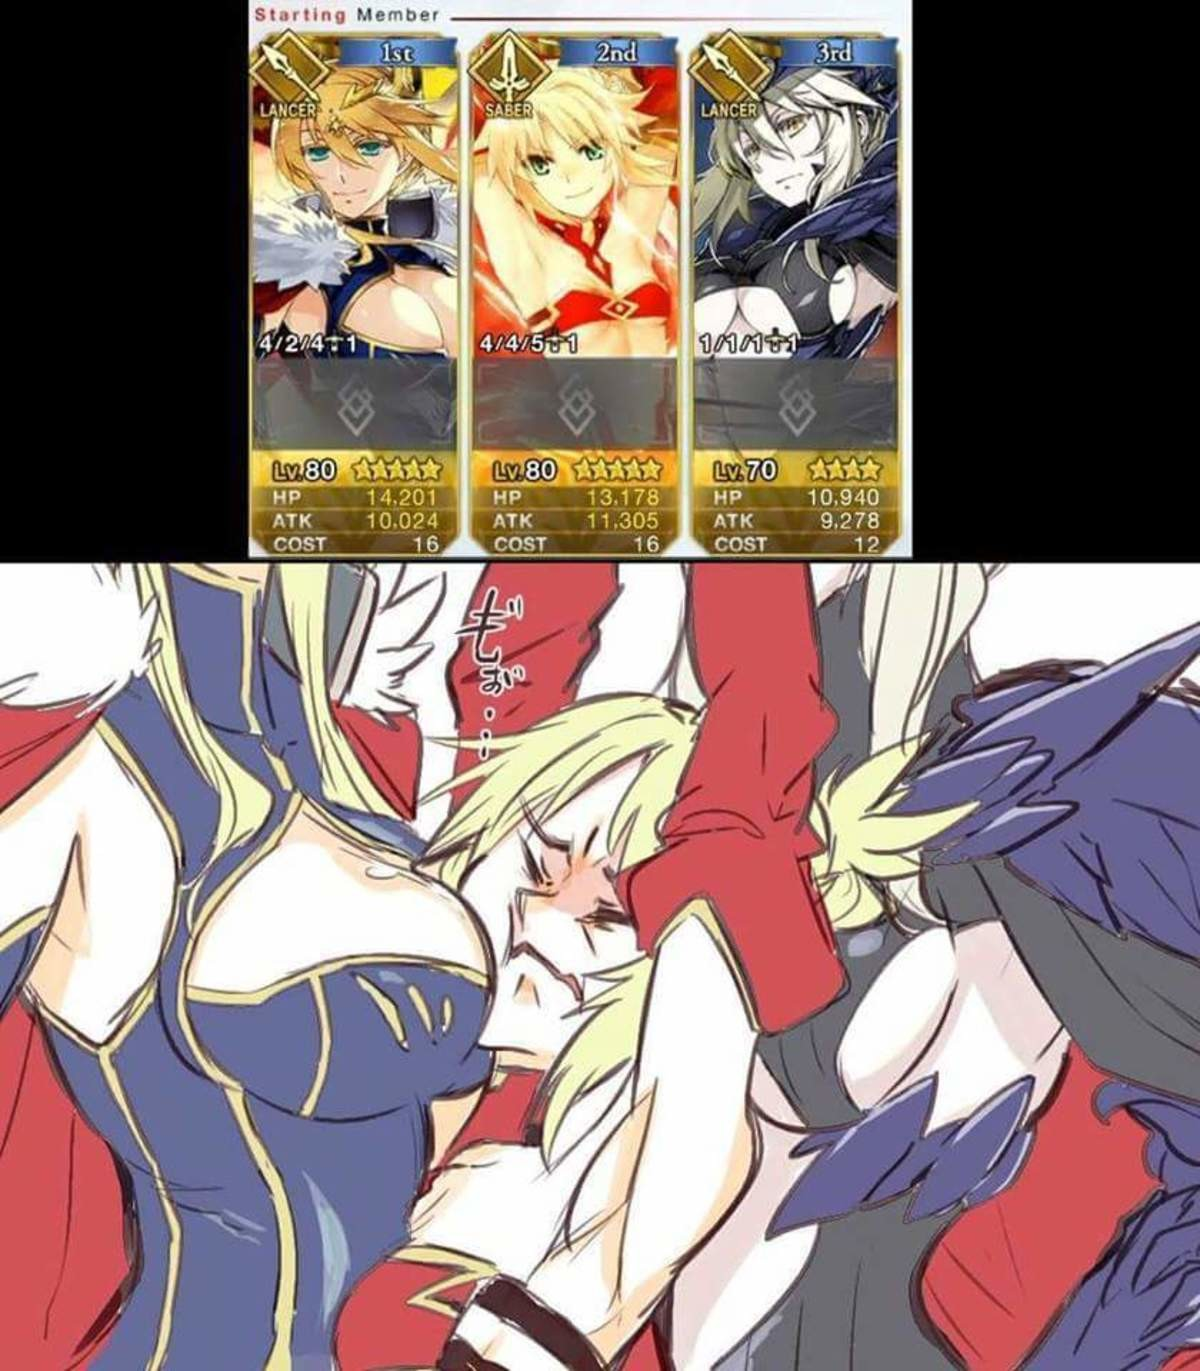 God I Wish I Was Mordred. join list: BewbDudes (2601 subs)Mention History join list:. > legal Age Difference join list: WeLikeOlderWomenMention History